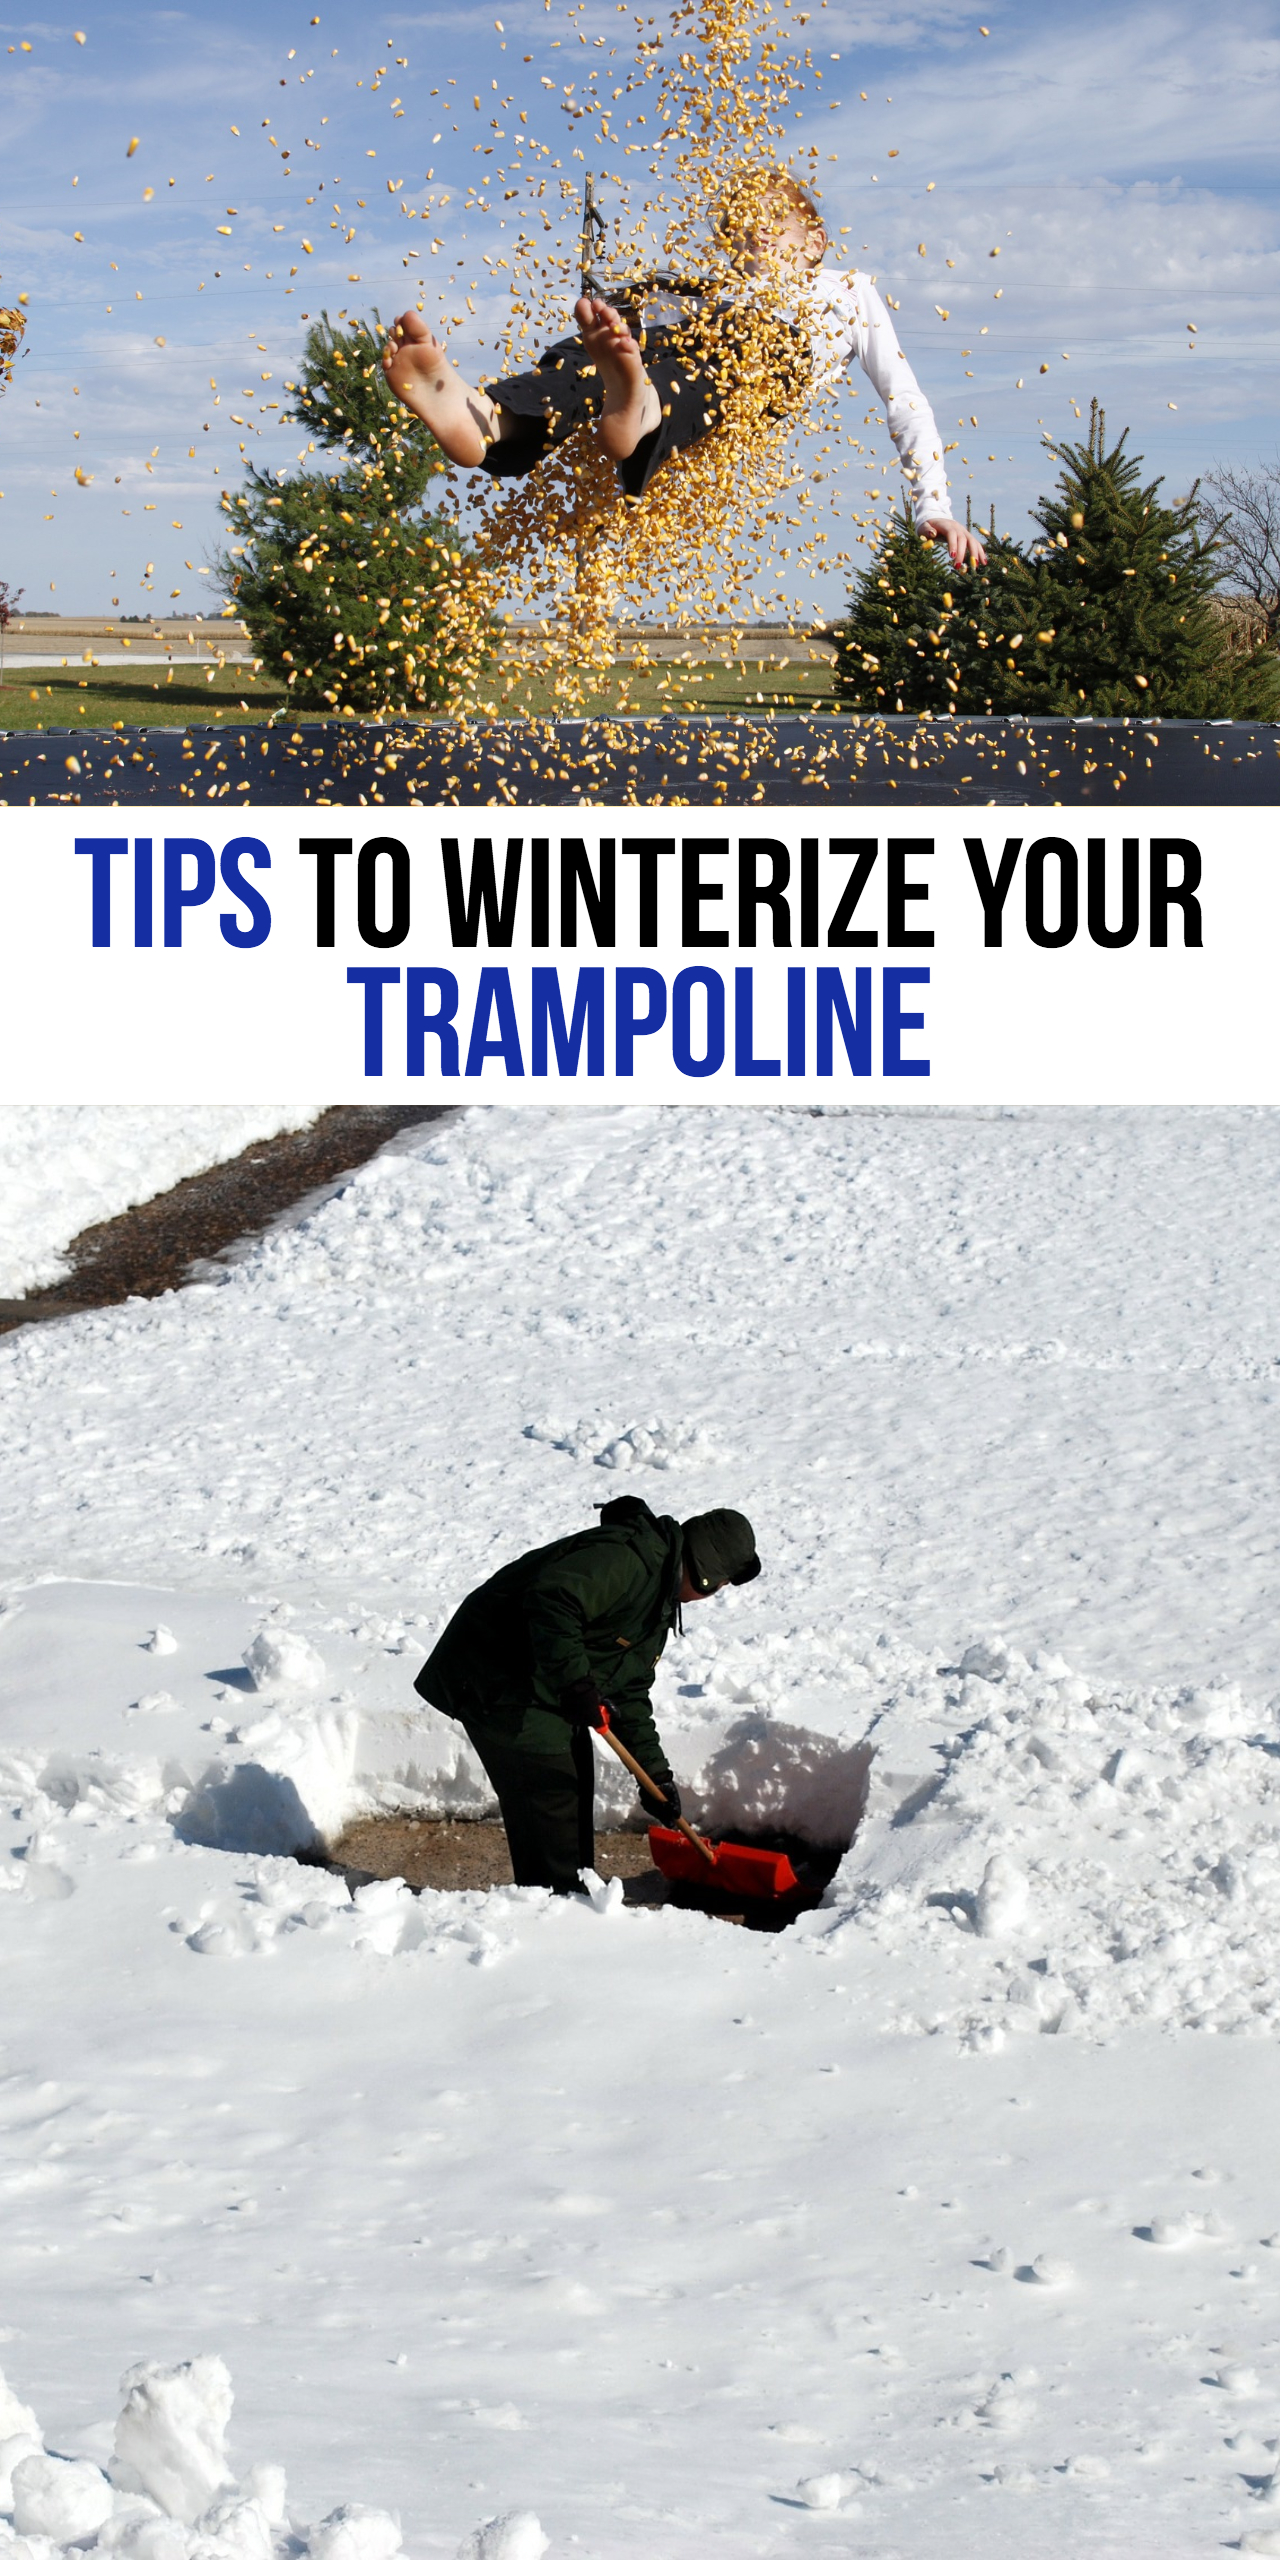 Trampoline Winterize | Trampoline Winter Cover | Trampoline Winter Care | Trampoline Winter Storage | Trampoline Tips | Winterize Trampoline | #trampoline